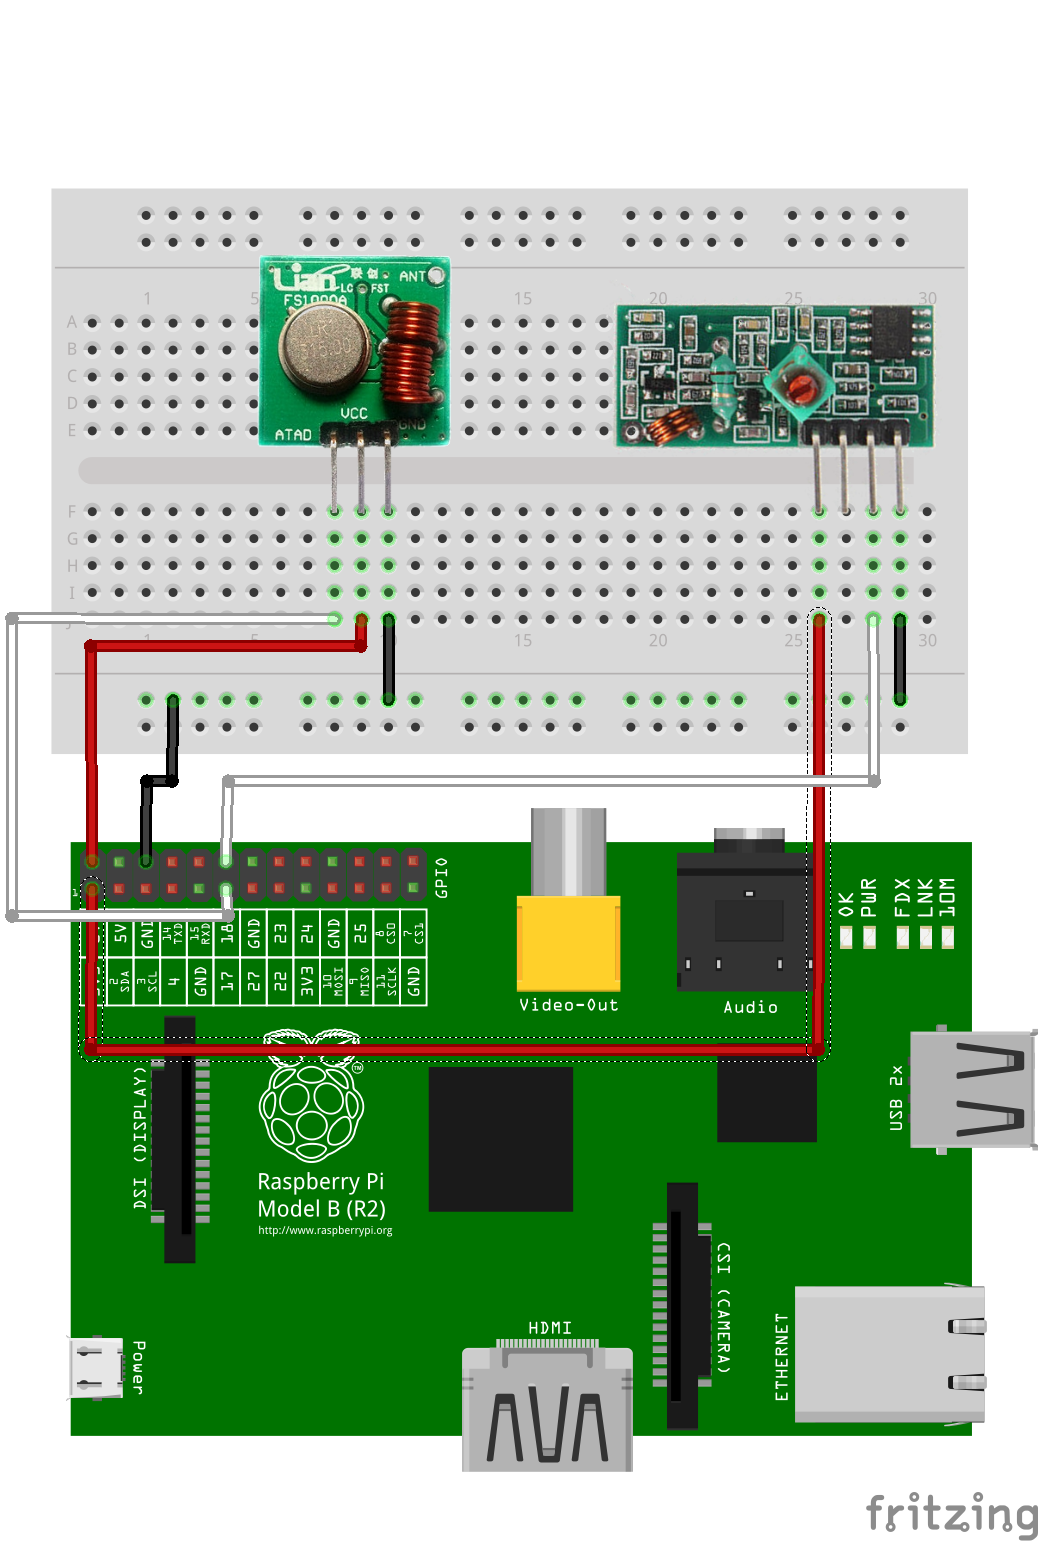 Remote Controlled Mains Sockets With Raspberry Pi Pygmalion Wiringpi Debian Package Physical Pins 11 And 12 Correspond To Bcm Gpio 17 18 As Well Pin Numbers 0 1 Lamp Rf 433 Bb